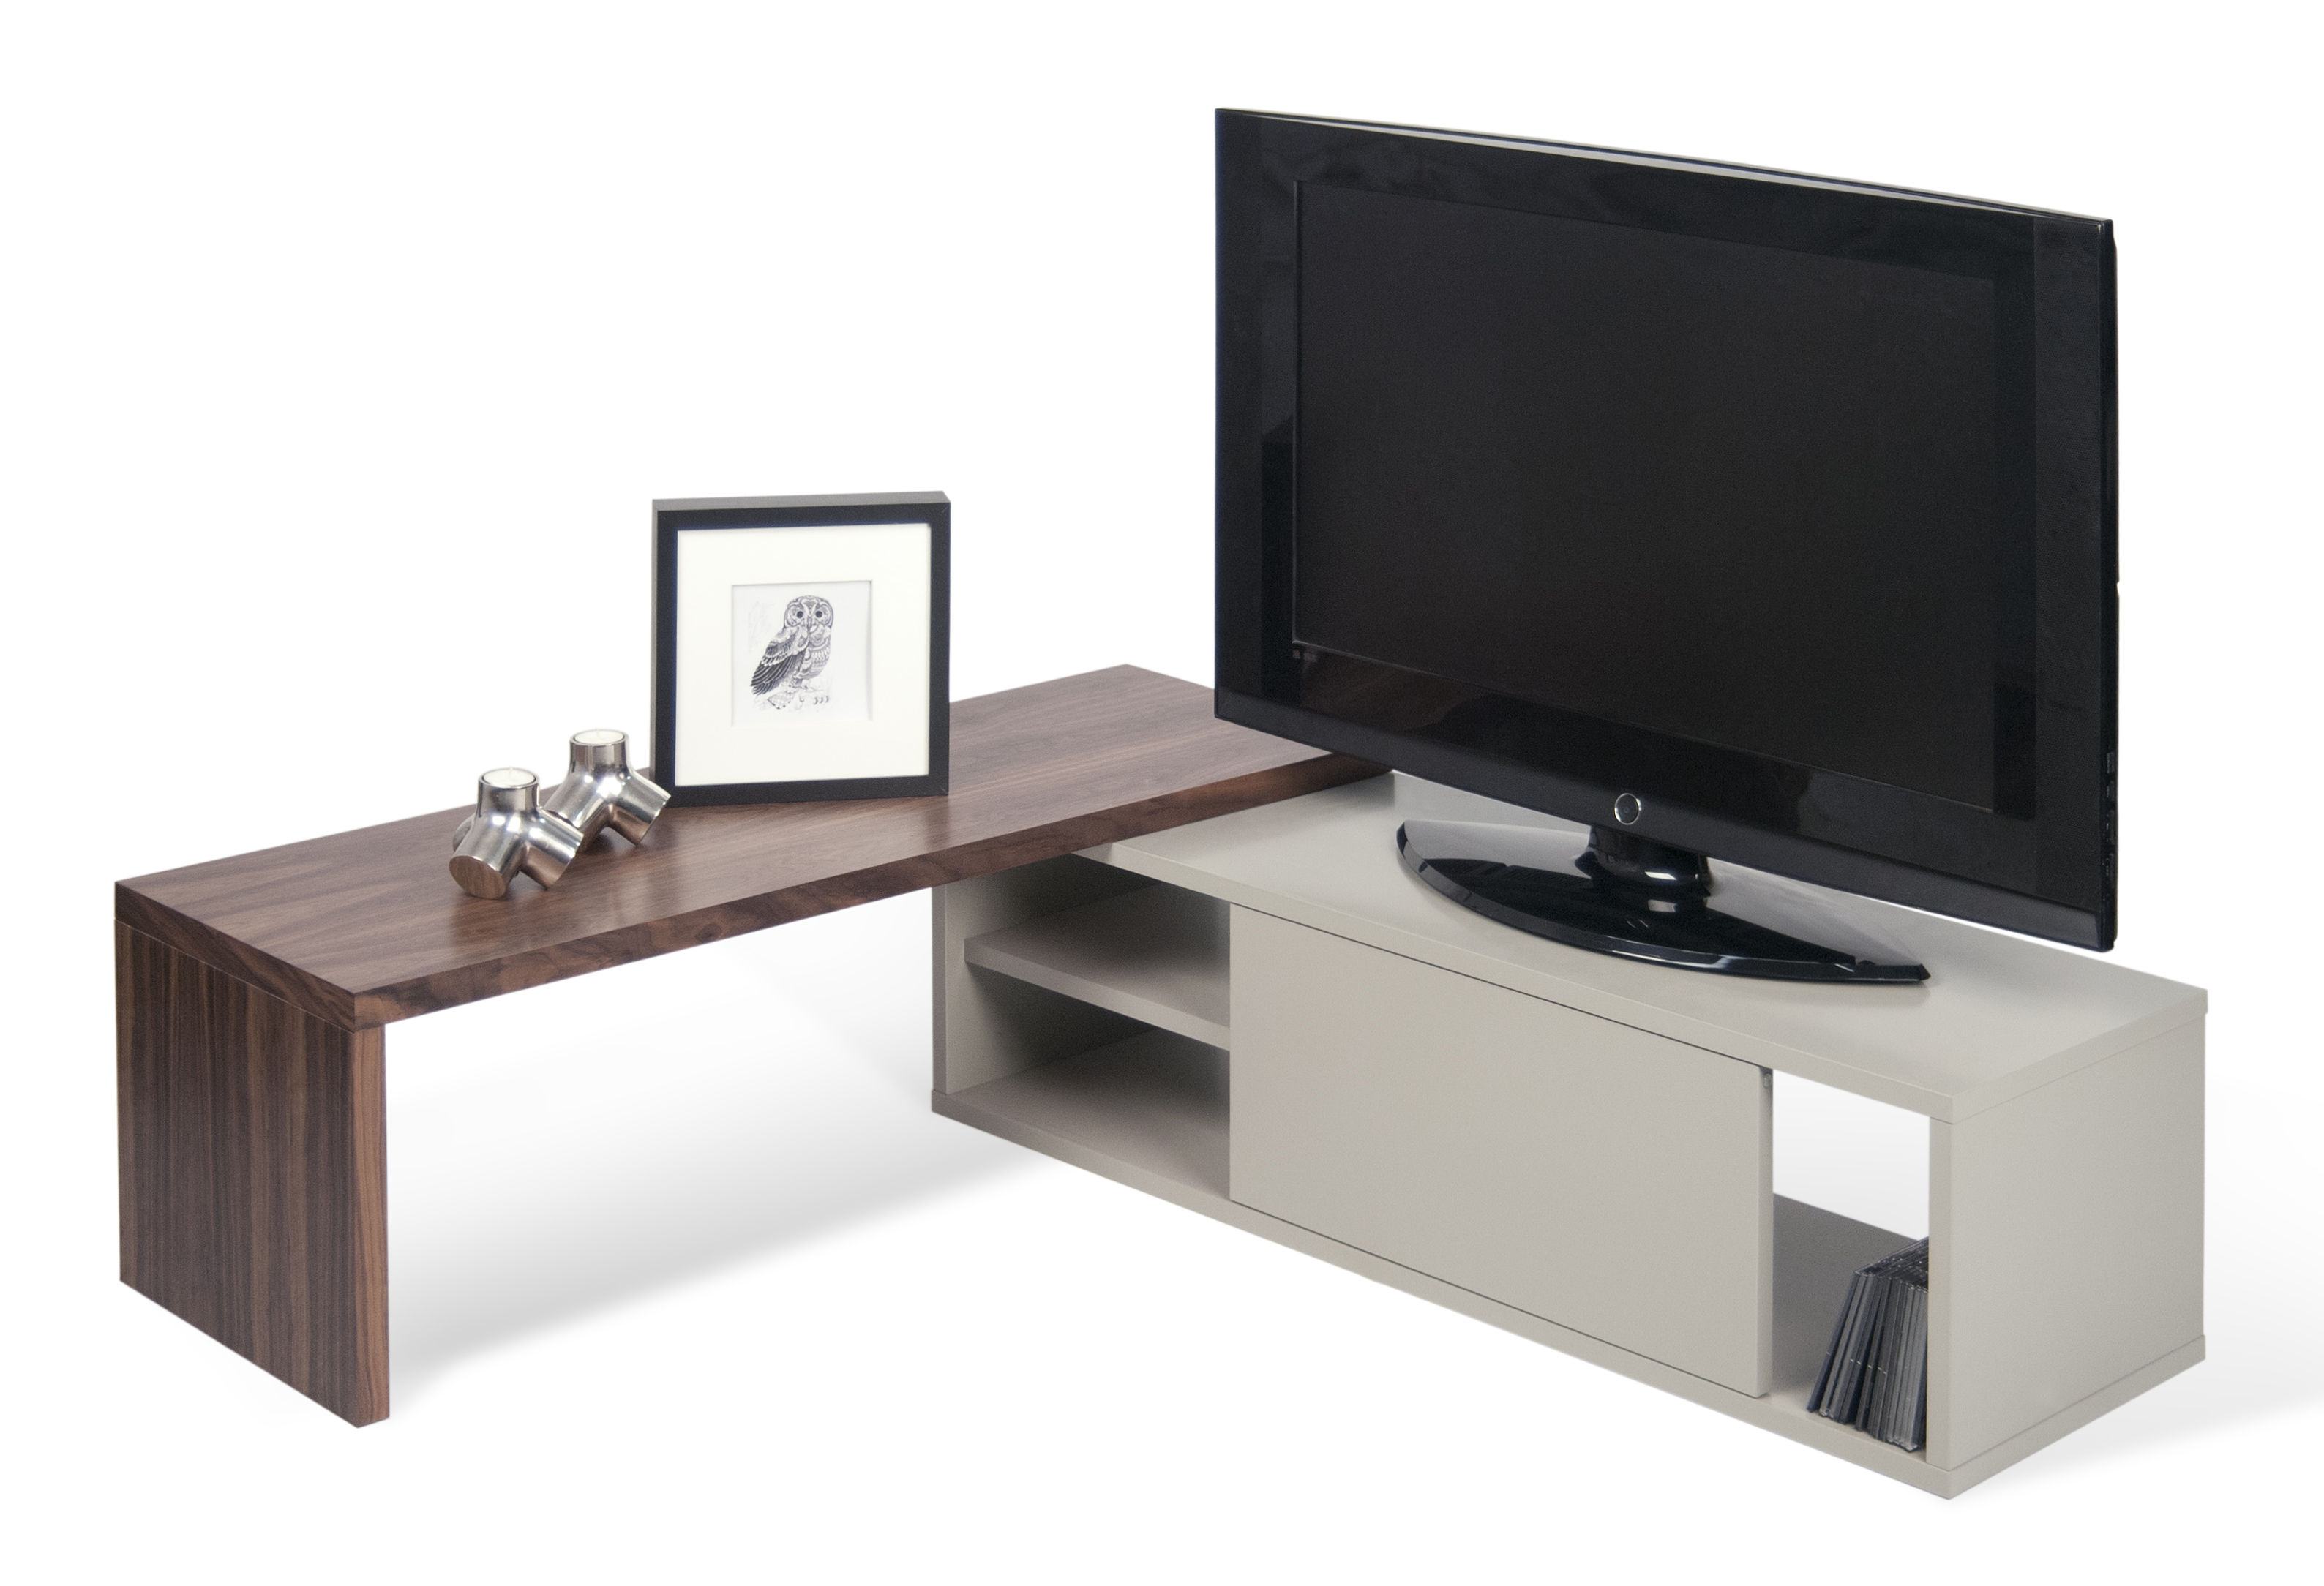 meuble tv extensible slide pop up home gris noyer l 110 x h 12 made in design. Black Bedroom Furniture Sets. Home Design Ideas